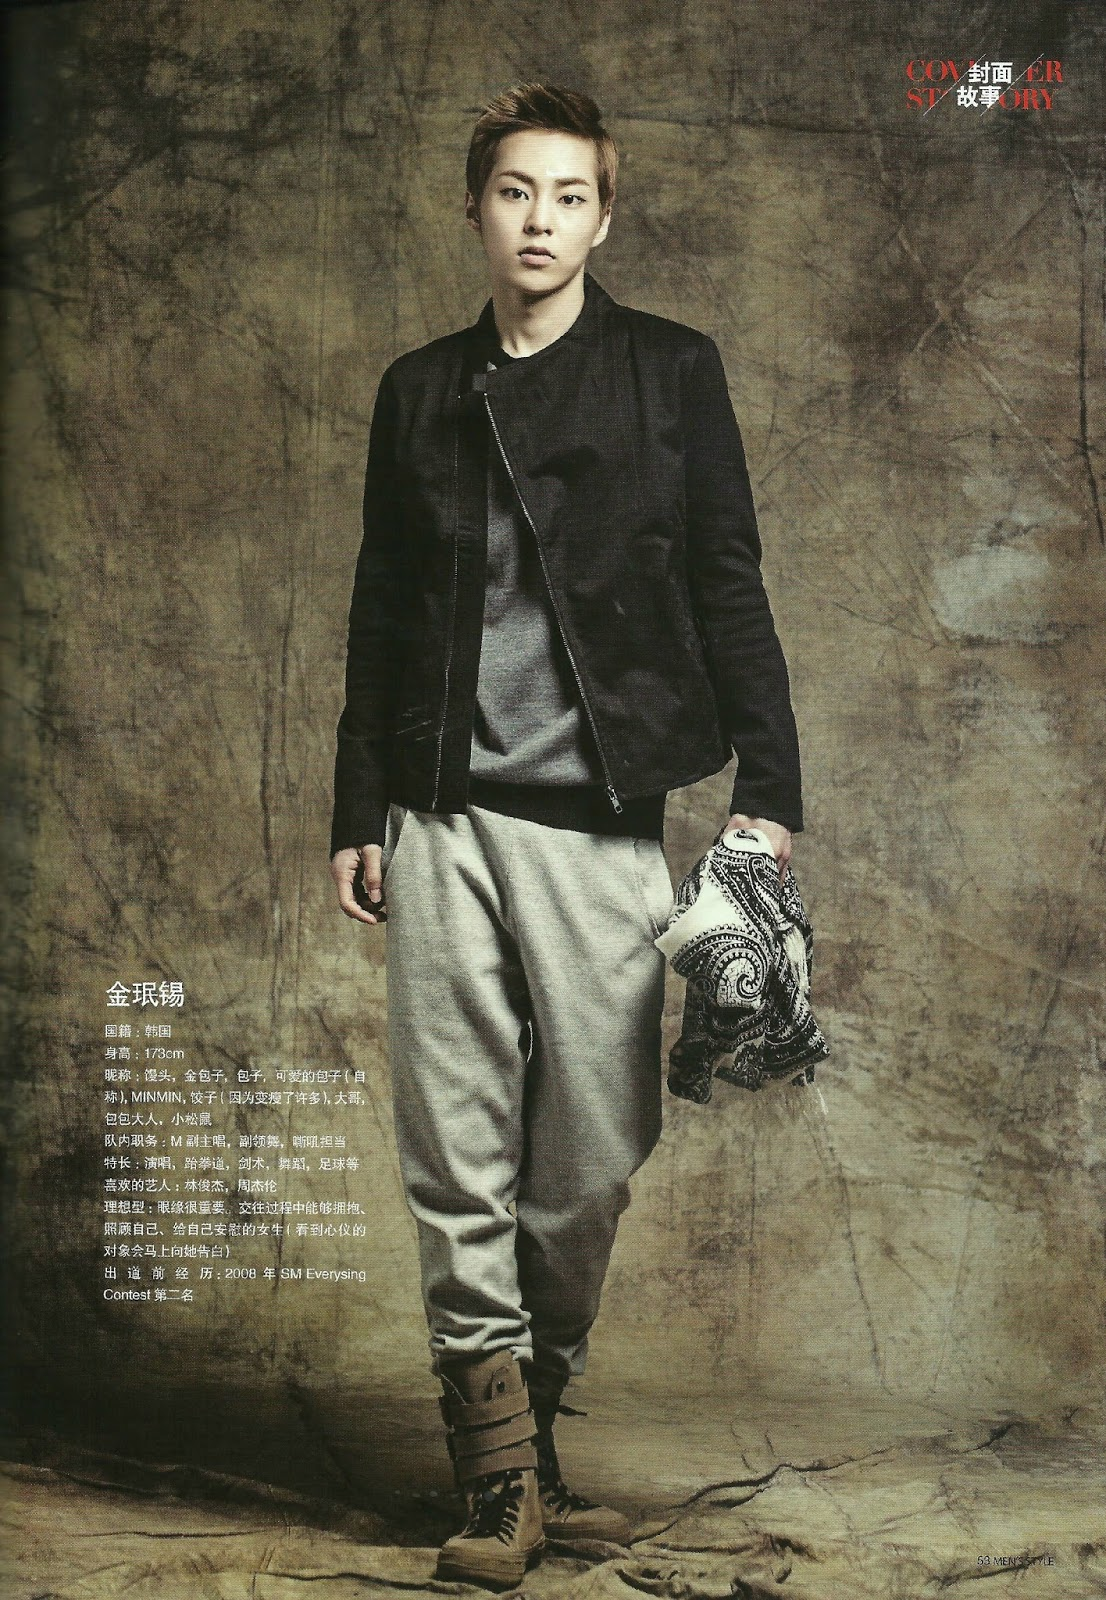 [SCANS] MEN'S STYLE (September 2013)